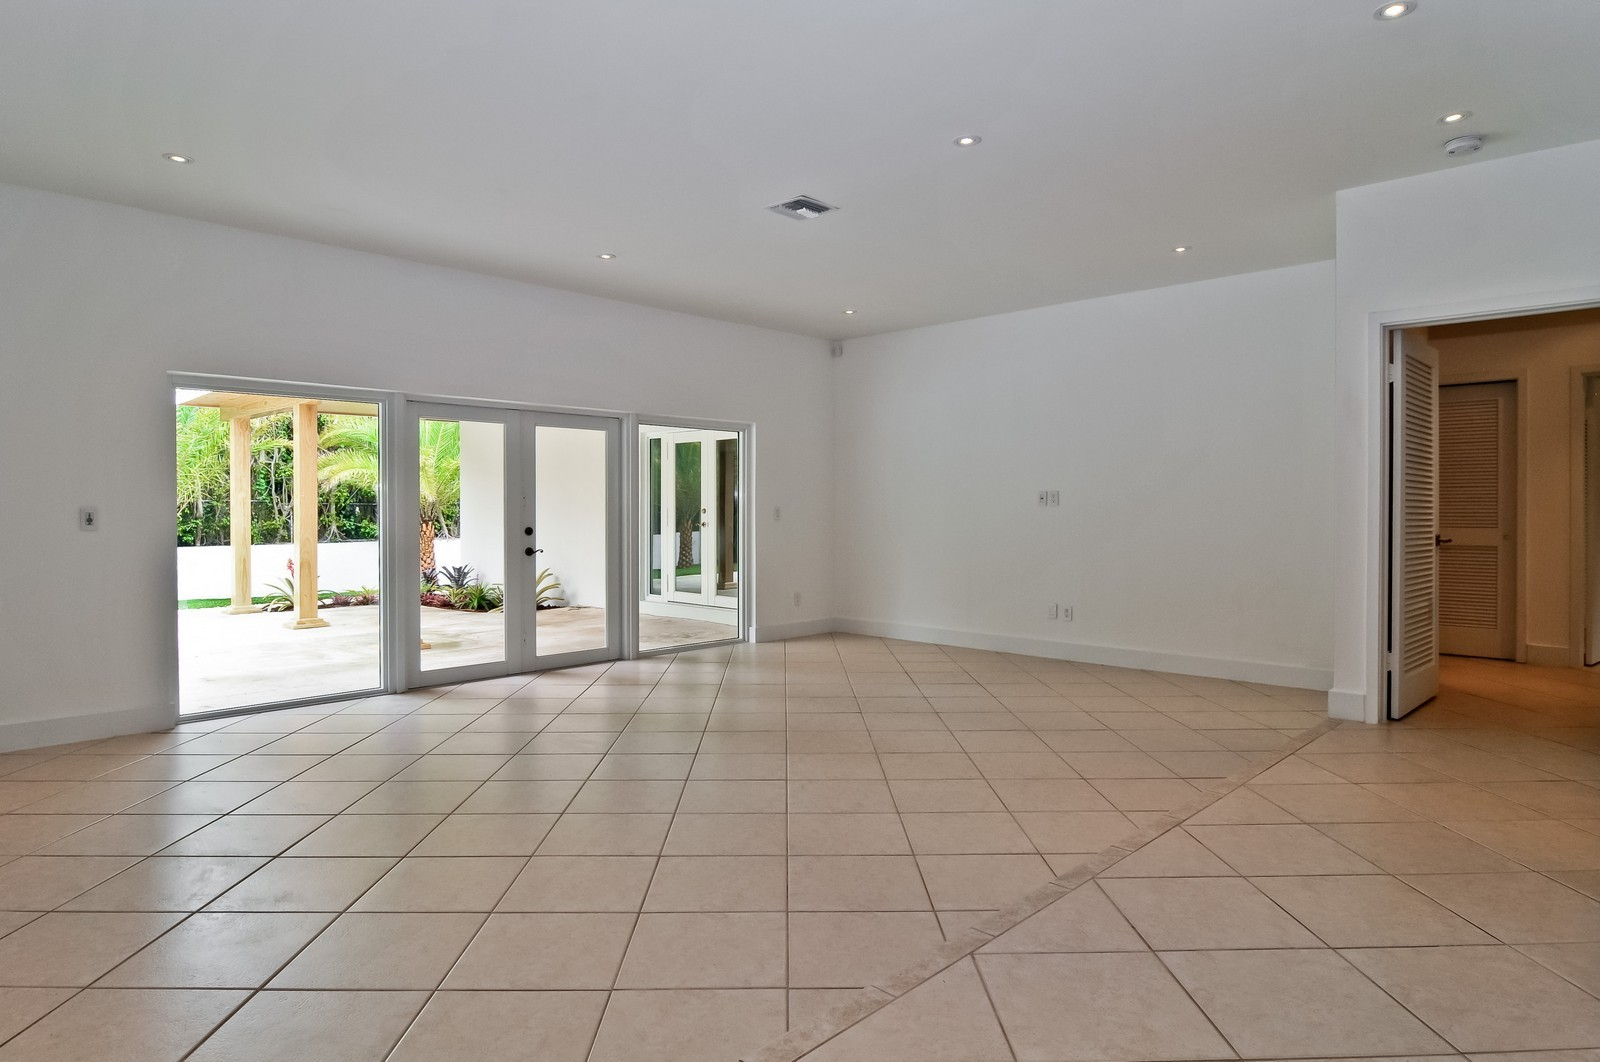 Real Estate Photography - 3645 Battersea, Miami, FL, 33133 - Living Room